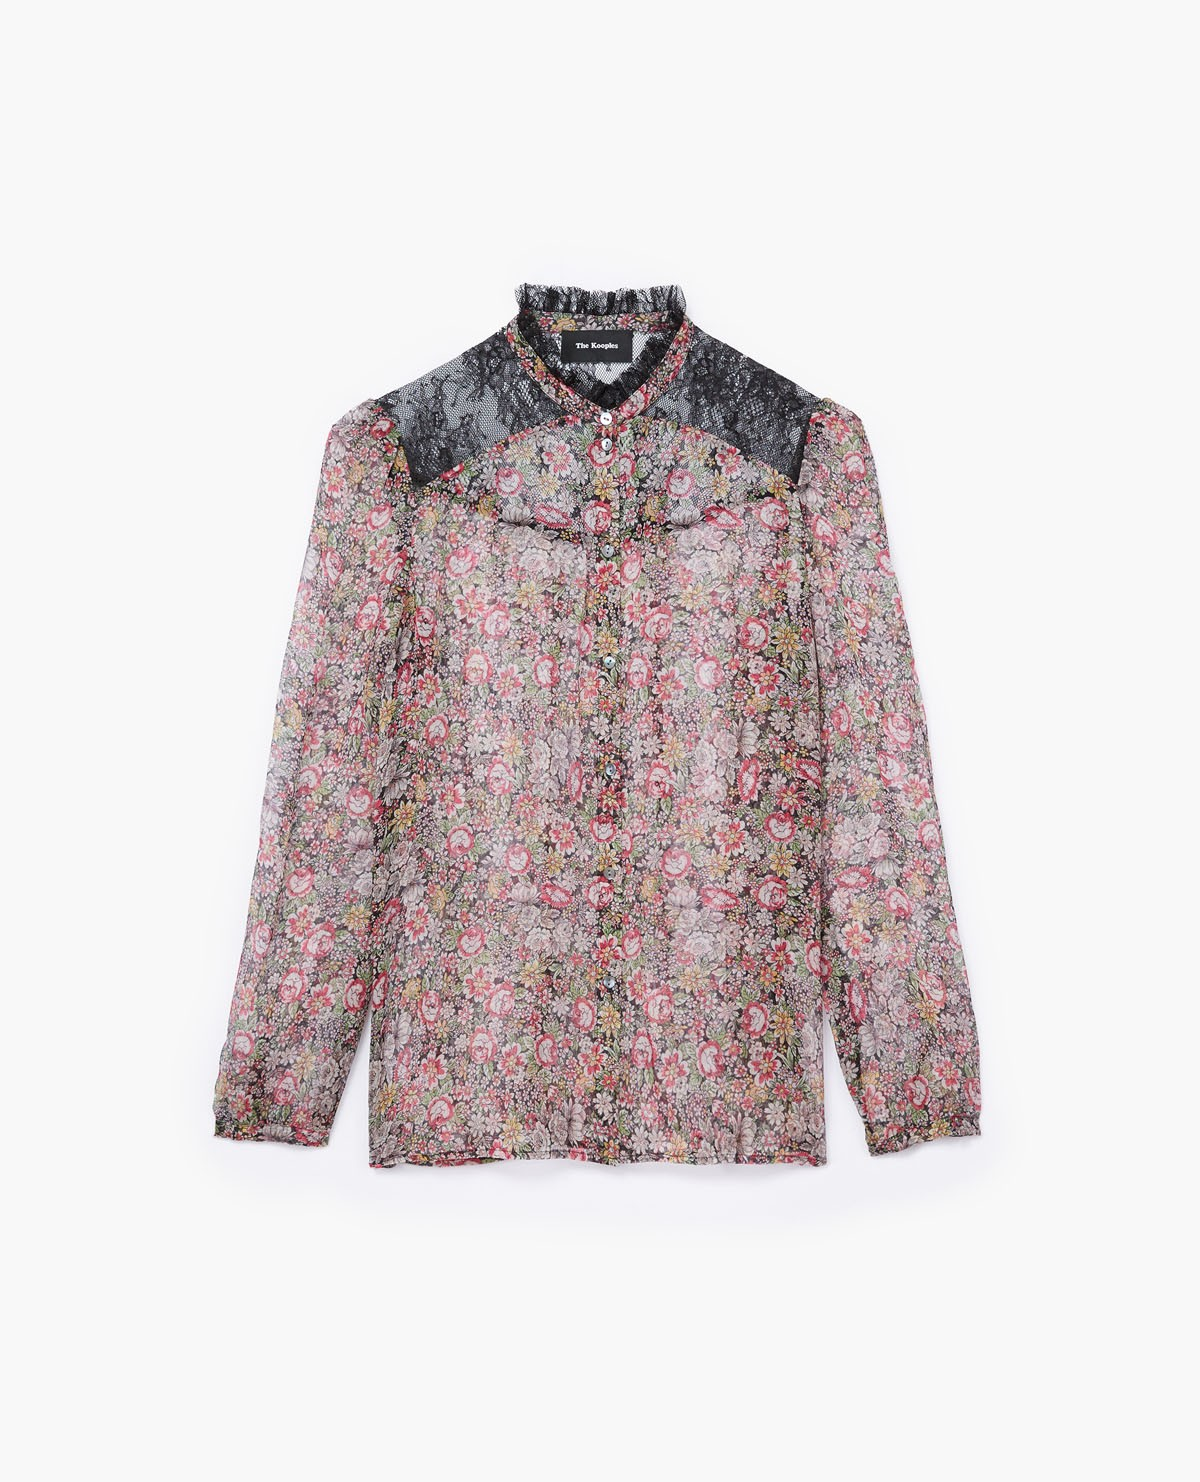 b2d37e59e8 Shop Kooples Floral Blouse with Black Lace Detail from The Kooples ...